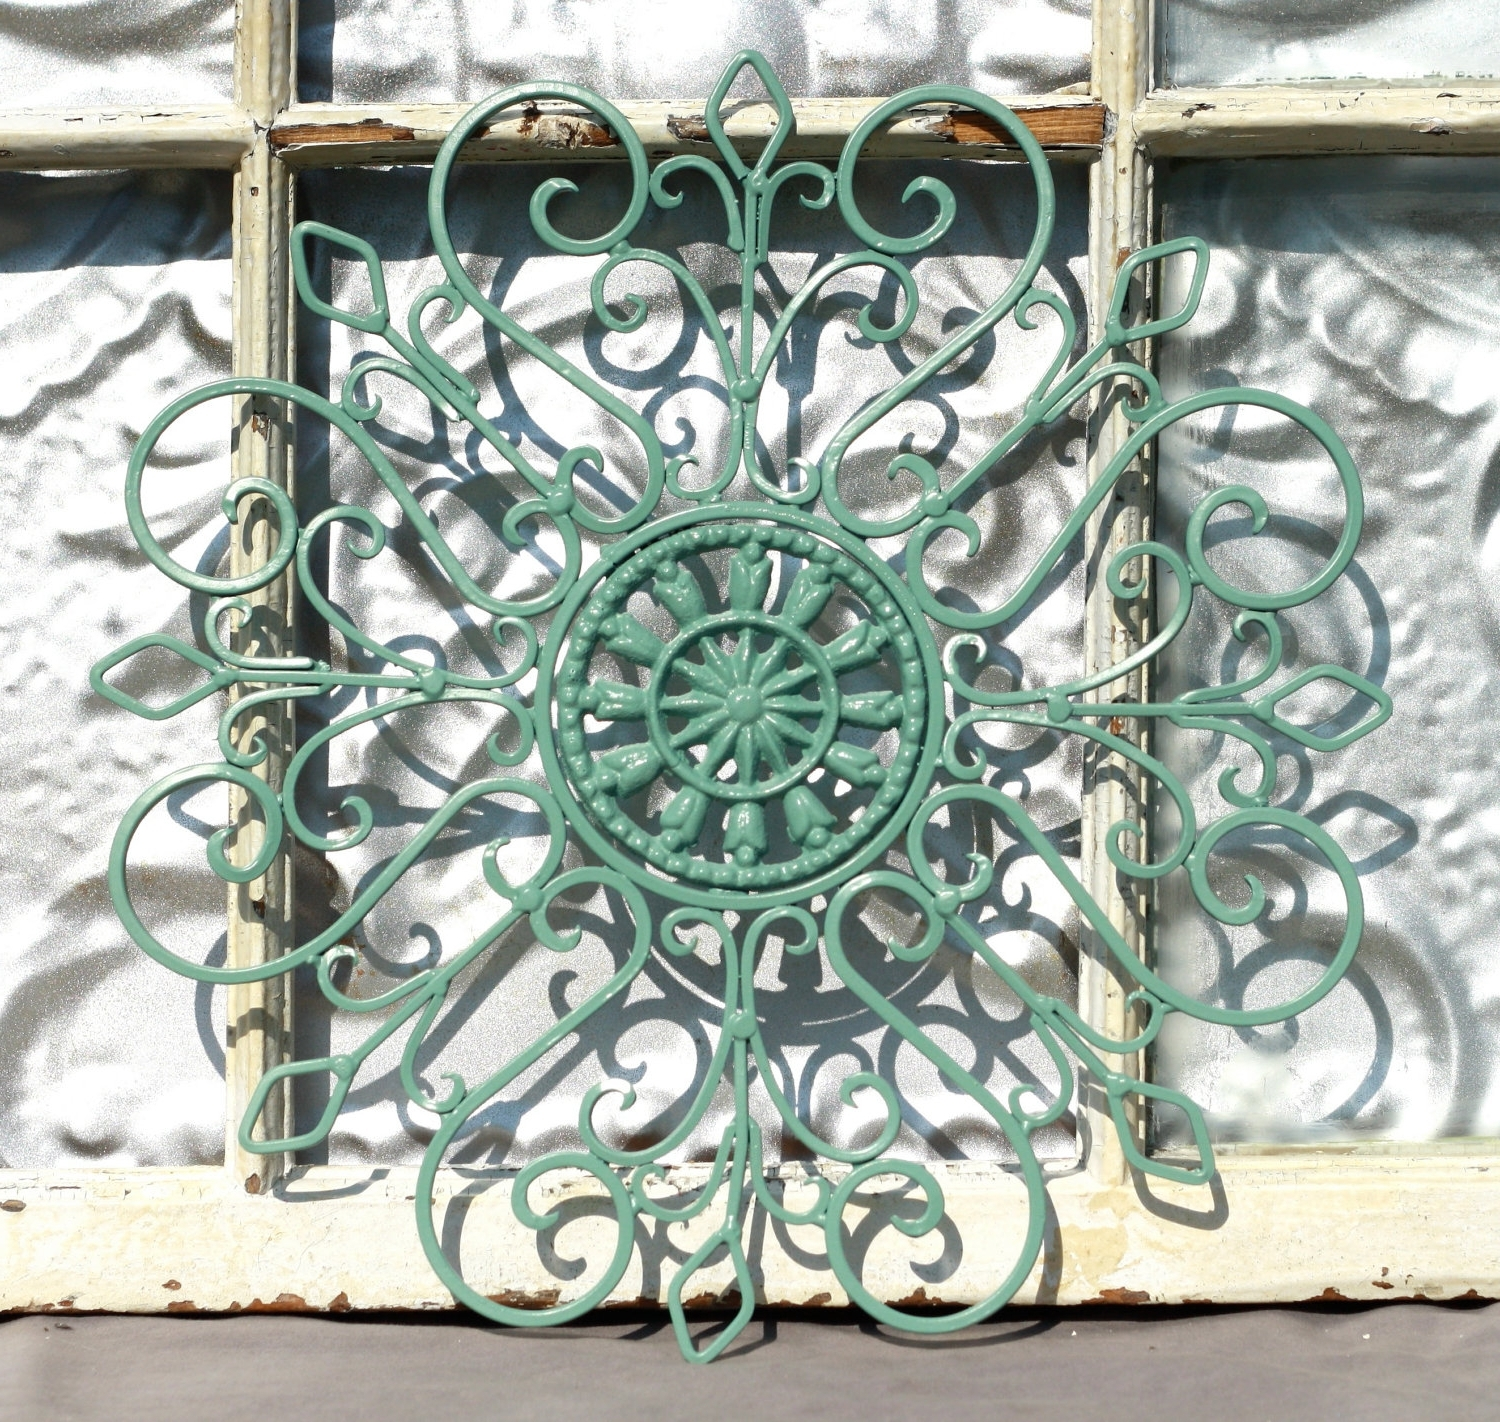 ... Garden Wall Art With Regard To Recent Decorative Metal Walls Decor Gallery ... : metal exterior wall art - www.pureclipart.com